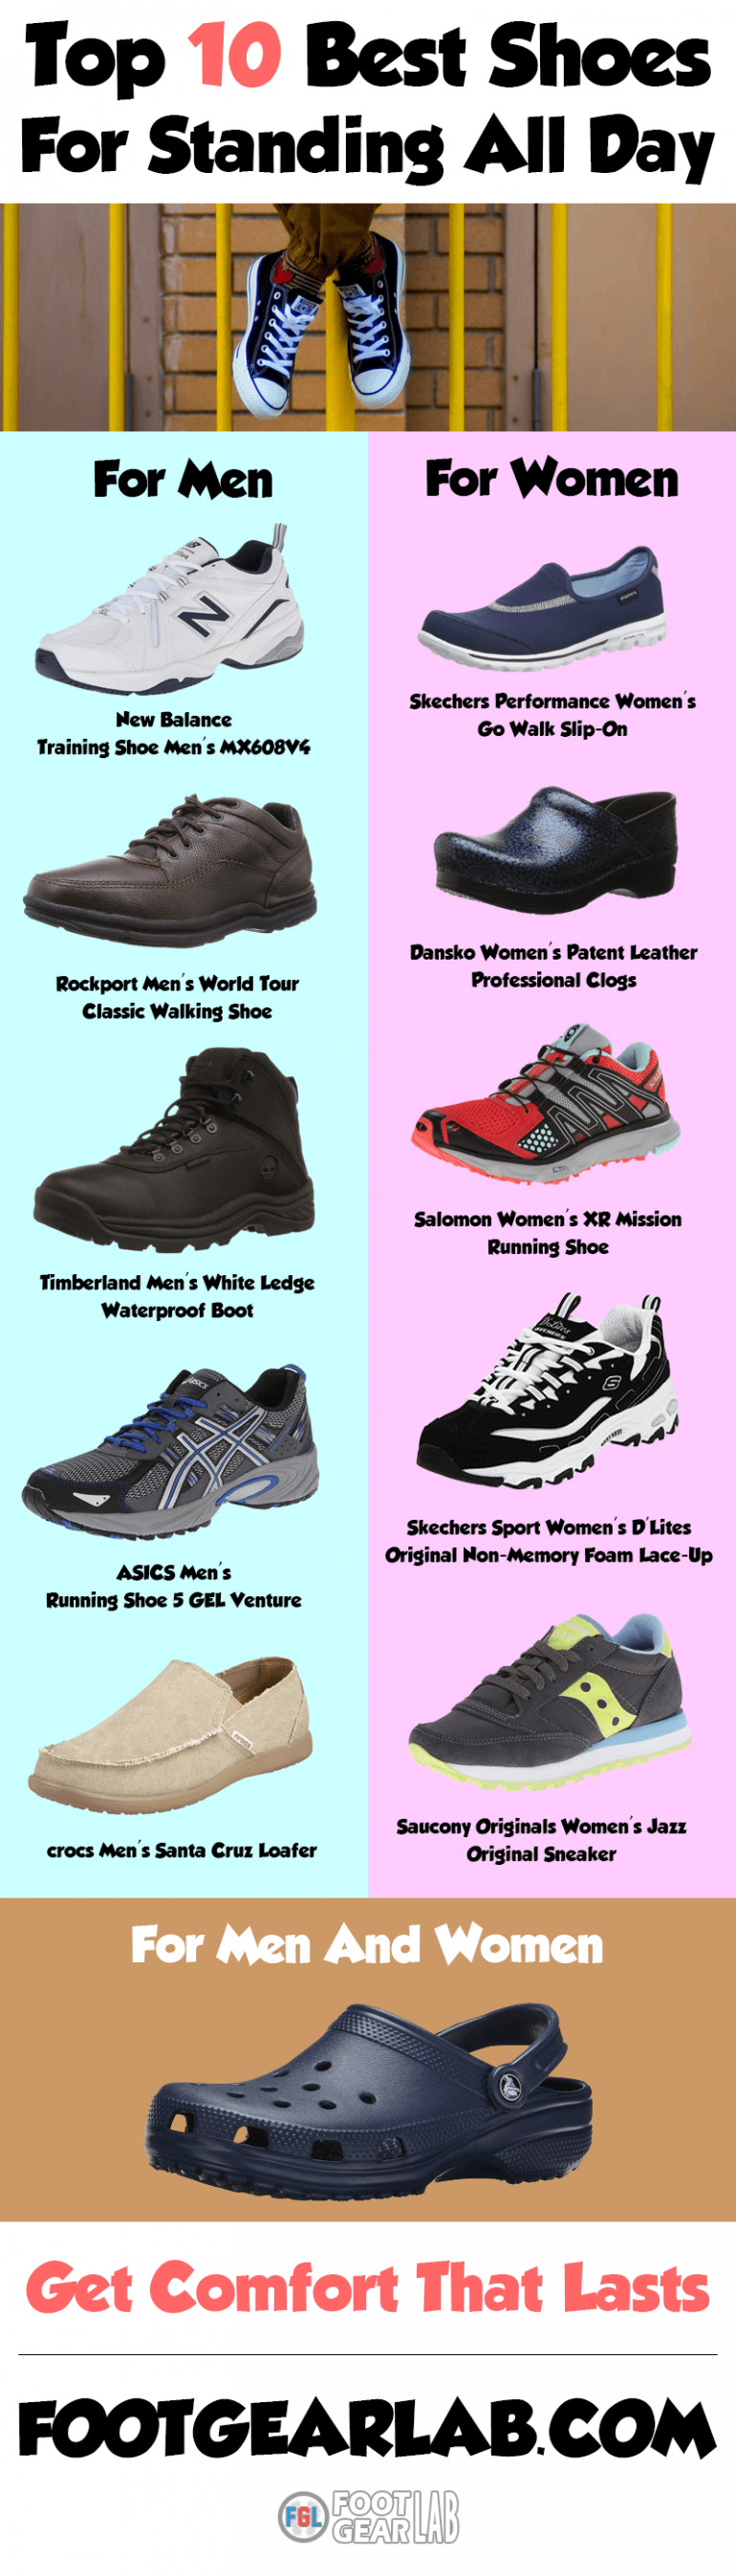 Best Womens Dress Shoes For Bad Knees